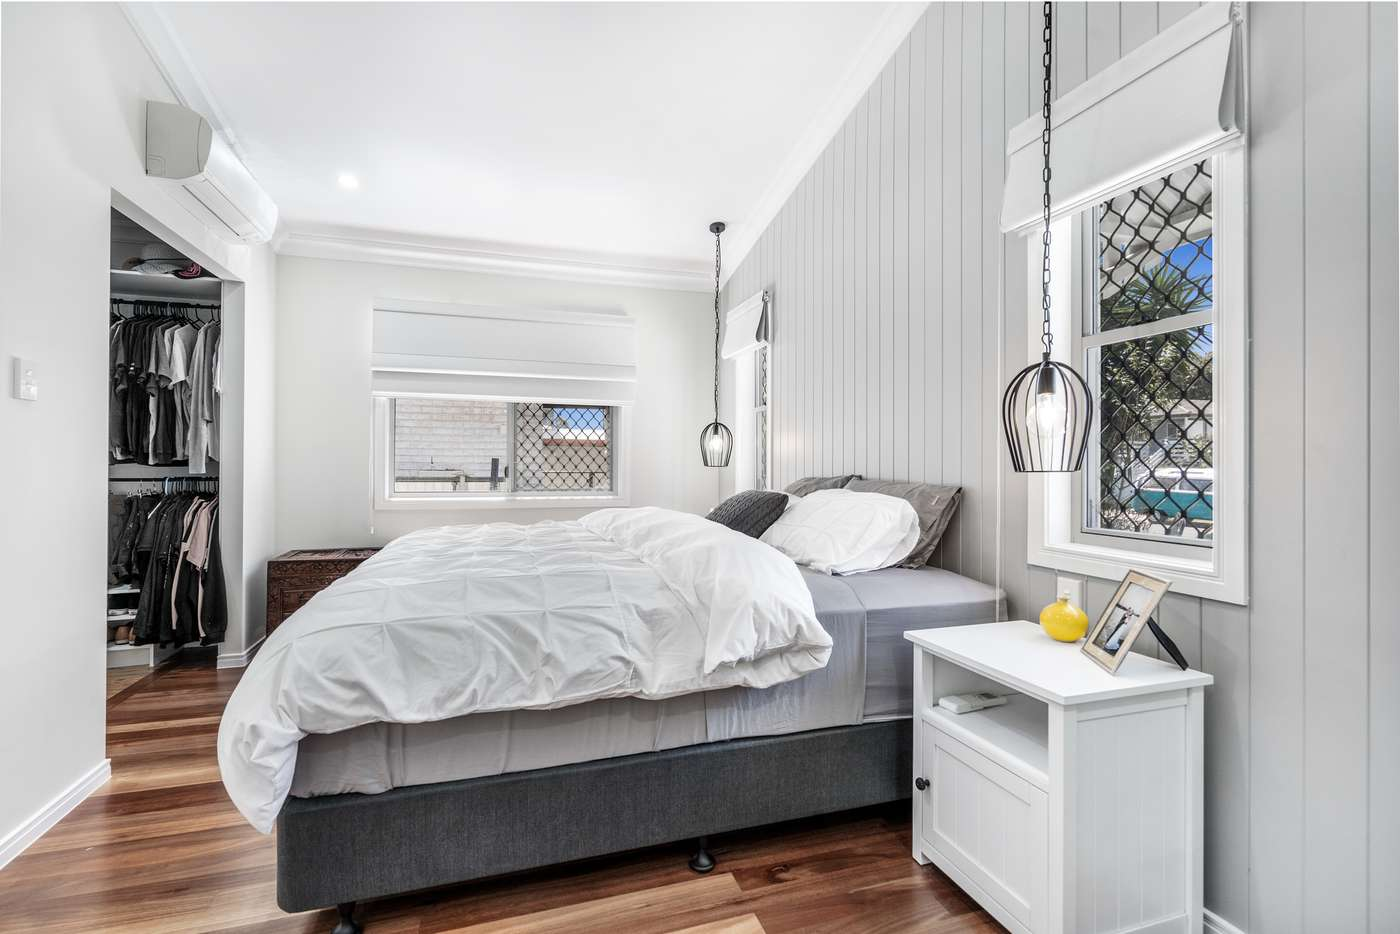 Fifth view of Homely house listing, 98 Thomas Street, Birkdale QLD 4159